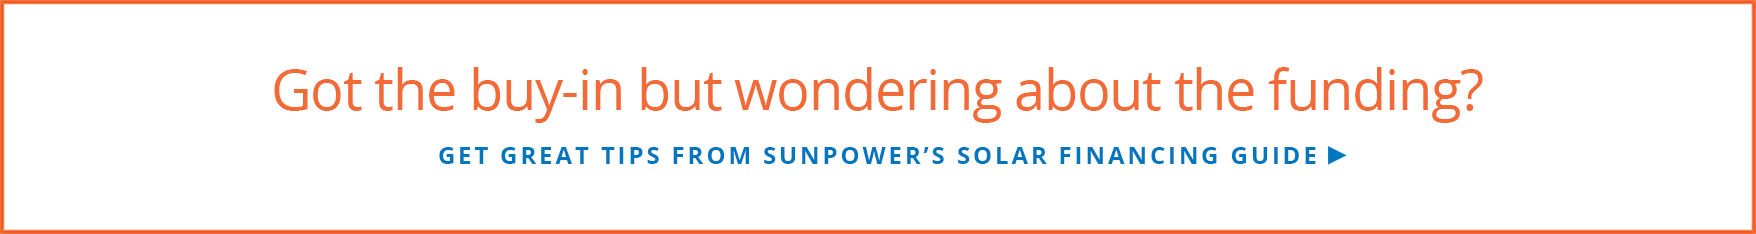 Get great funding tips from SunPower's solar financing guide